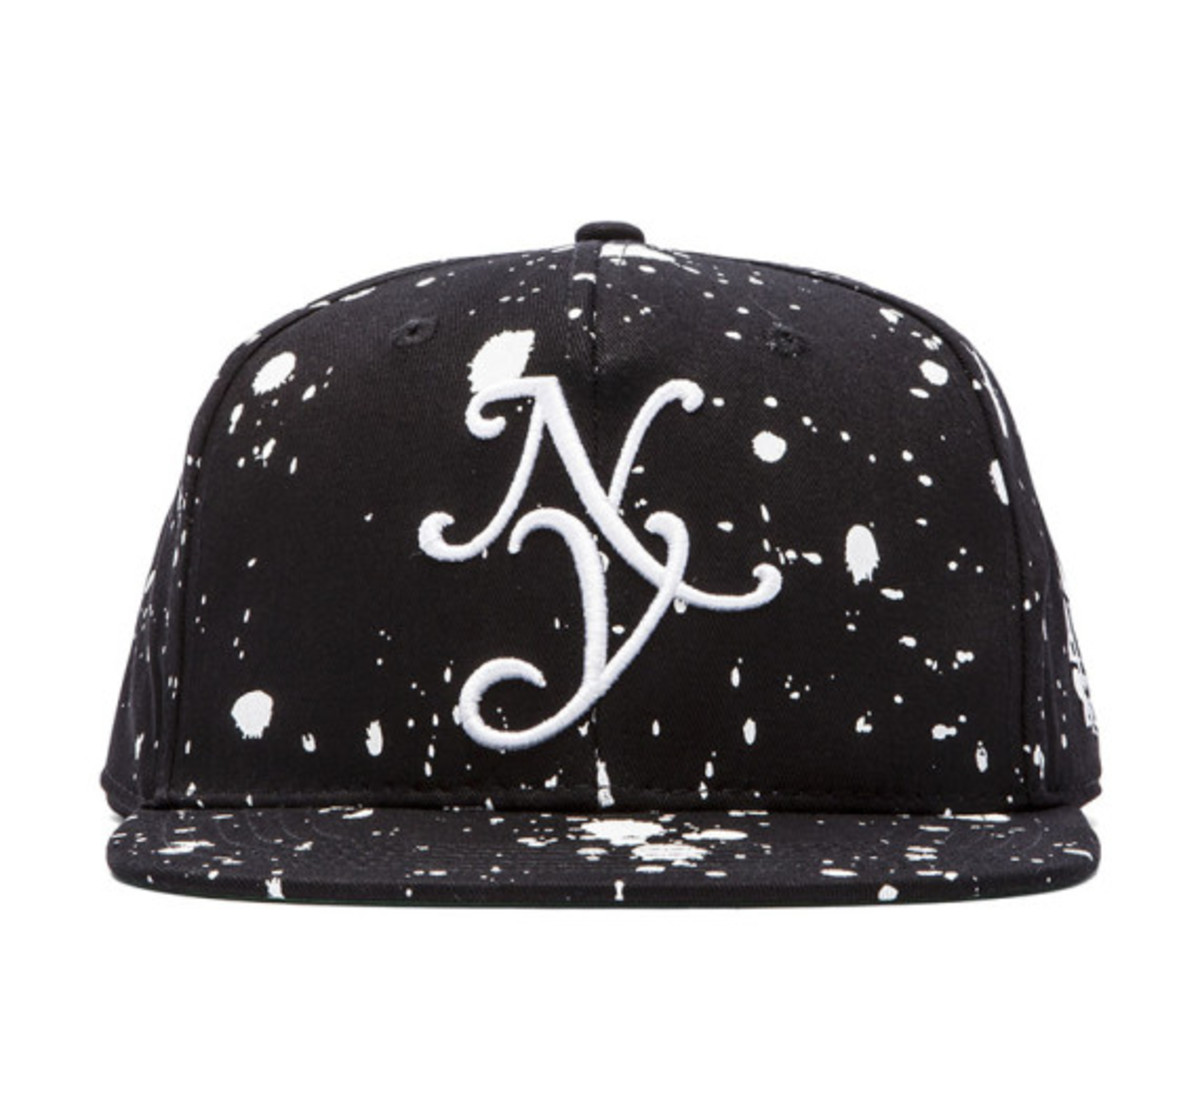 40oz NYC - Spring/Summer 2014 Snapback Cap Collection | Delivery 1 - 13